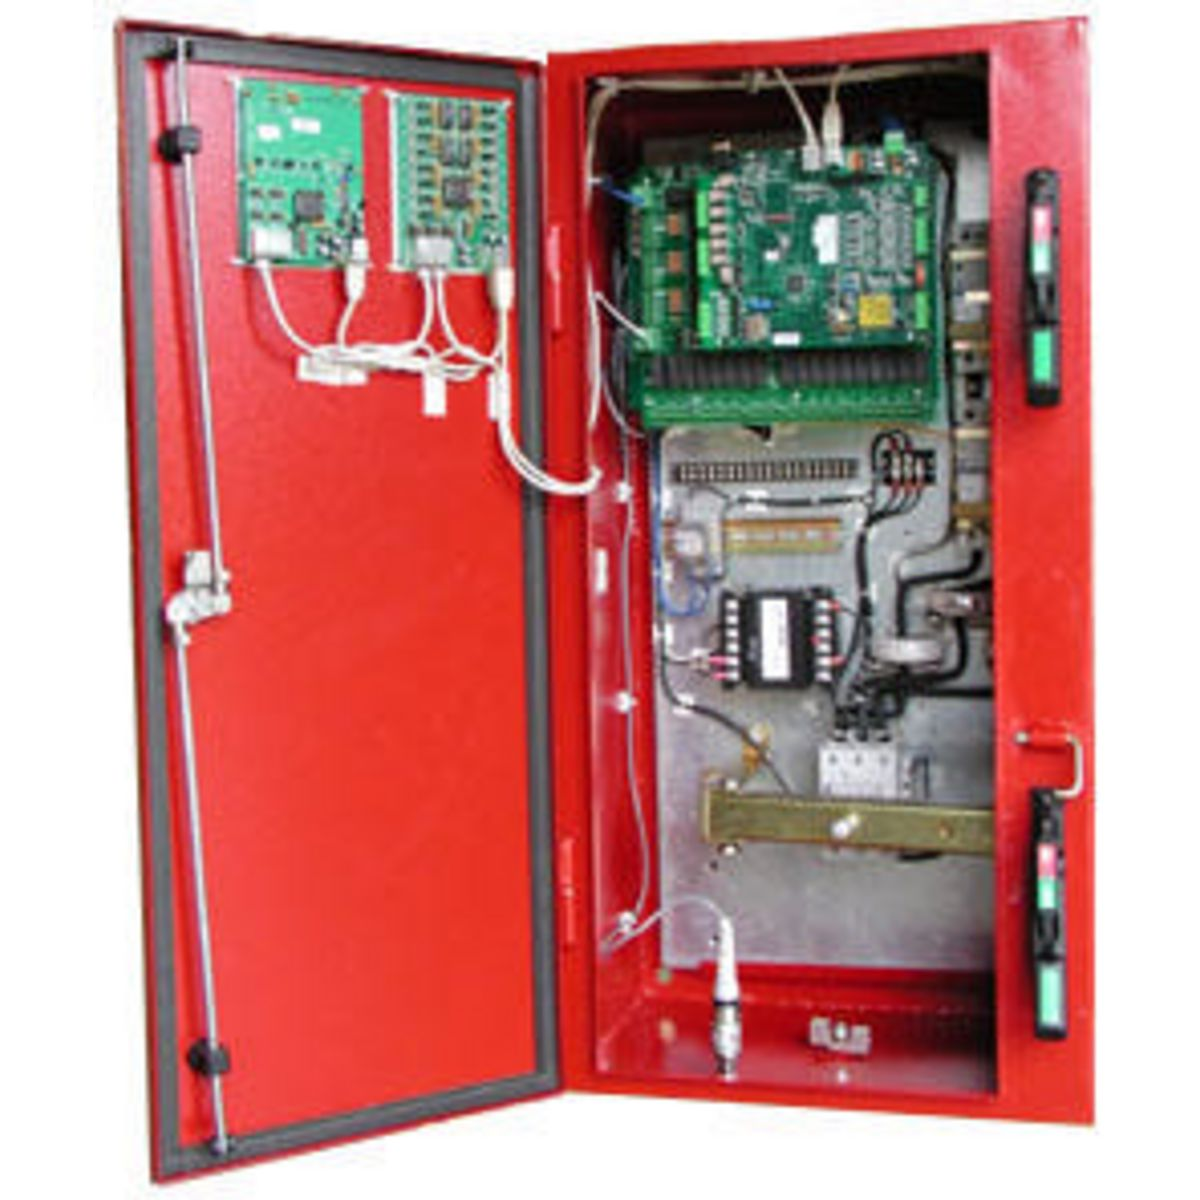 hclxi 1200 obsolete controllers fire pump controllers rh hubbell com Primary Electrical Fires Primary Electrical Fires